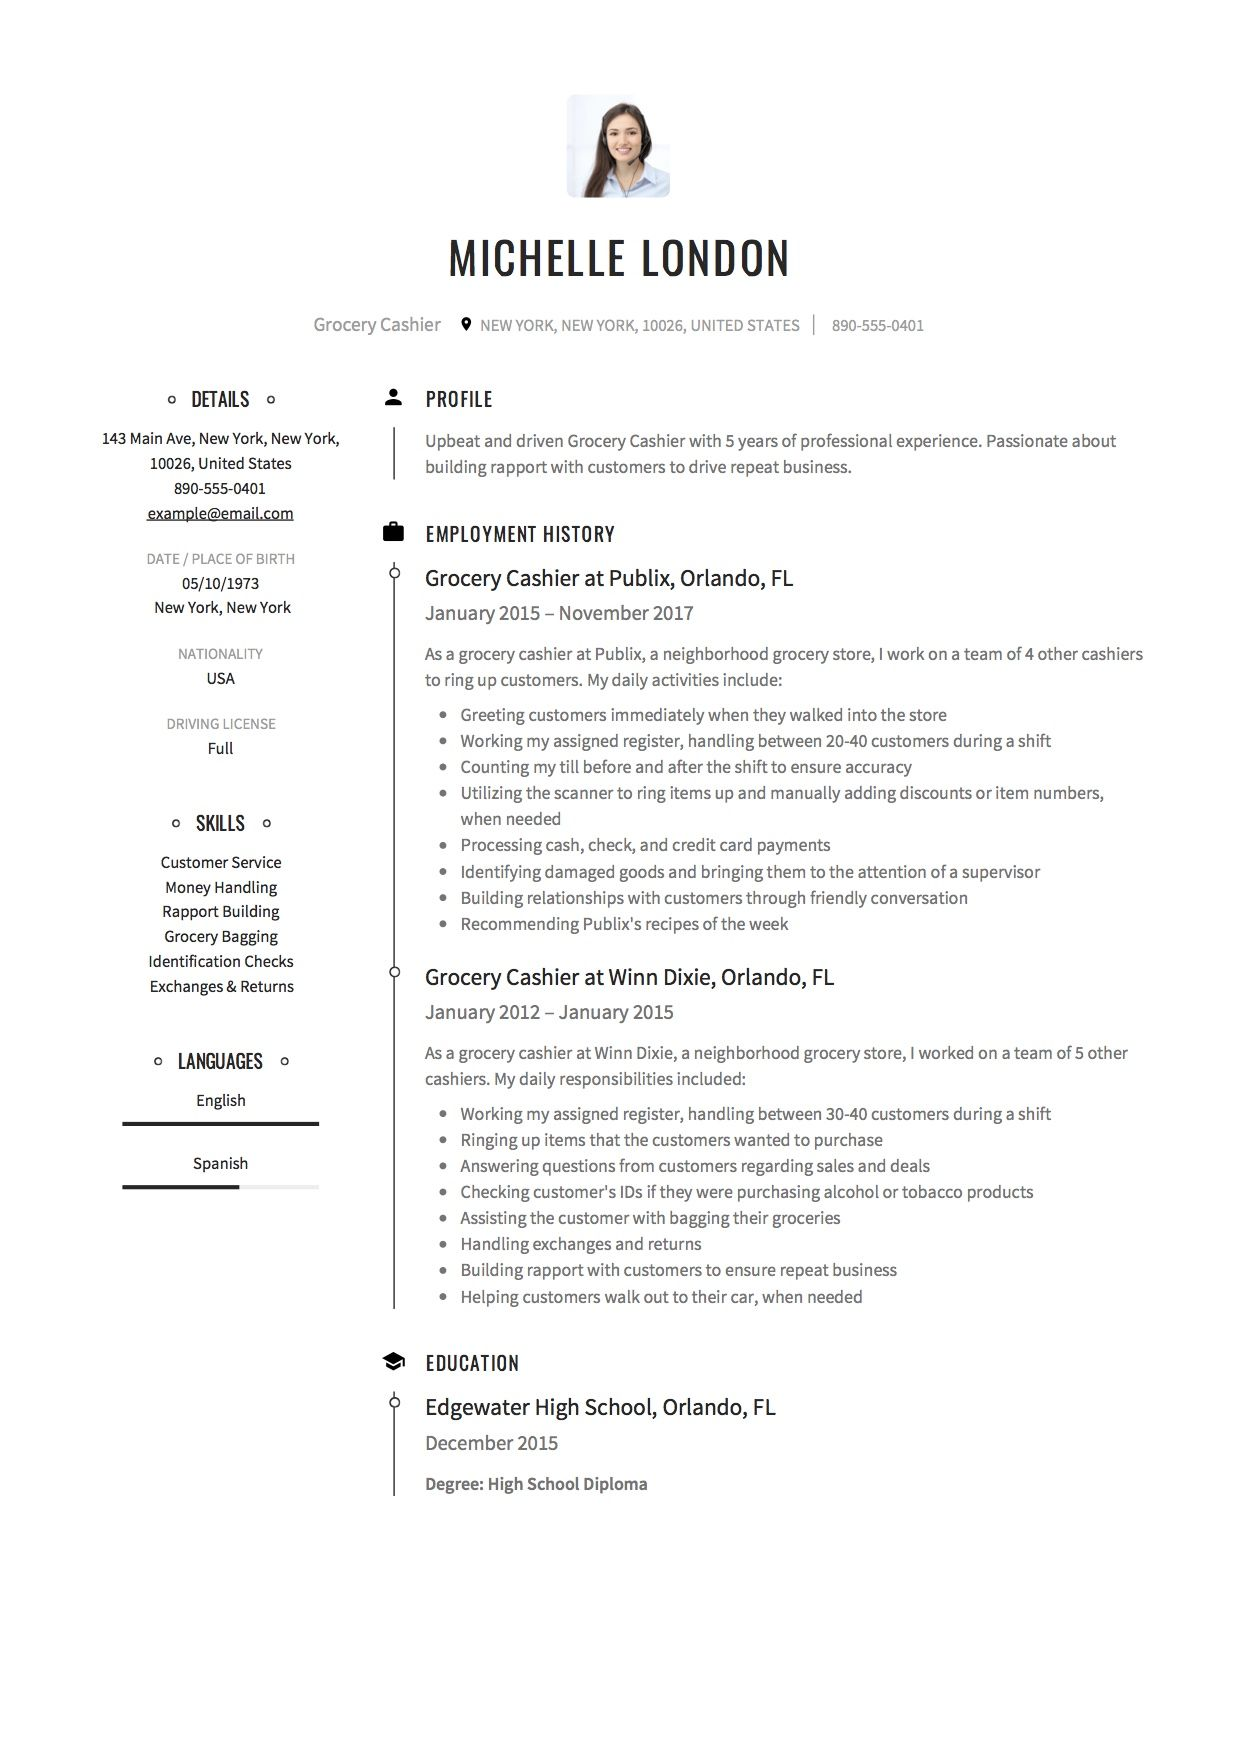 Grocery Cashier Resume Sample Free DownloadExample  Resume